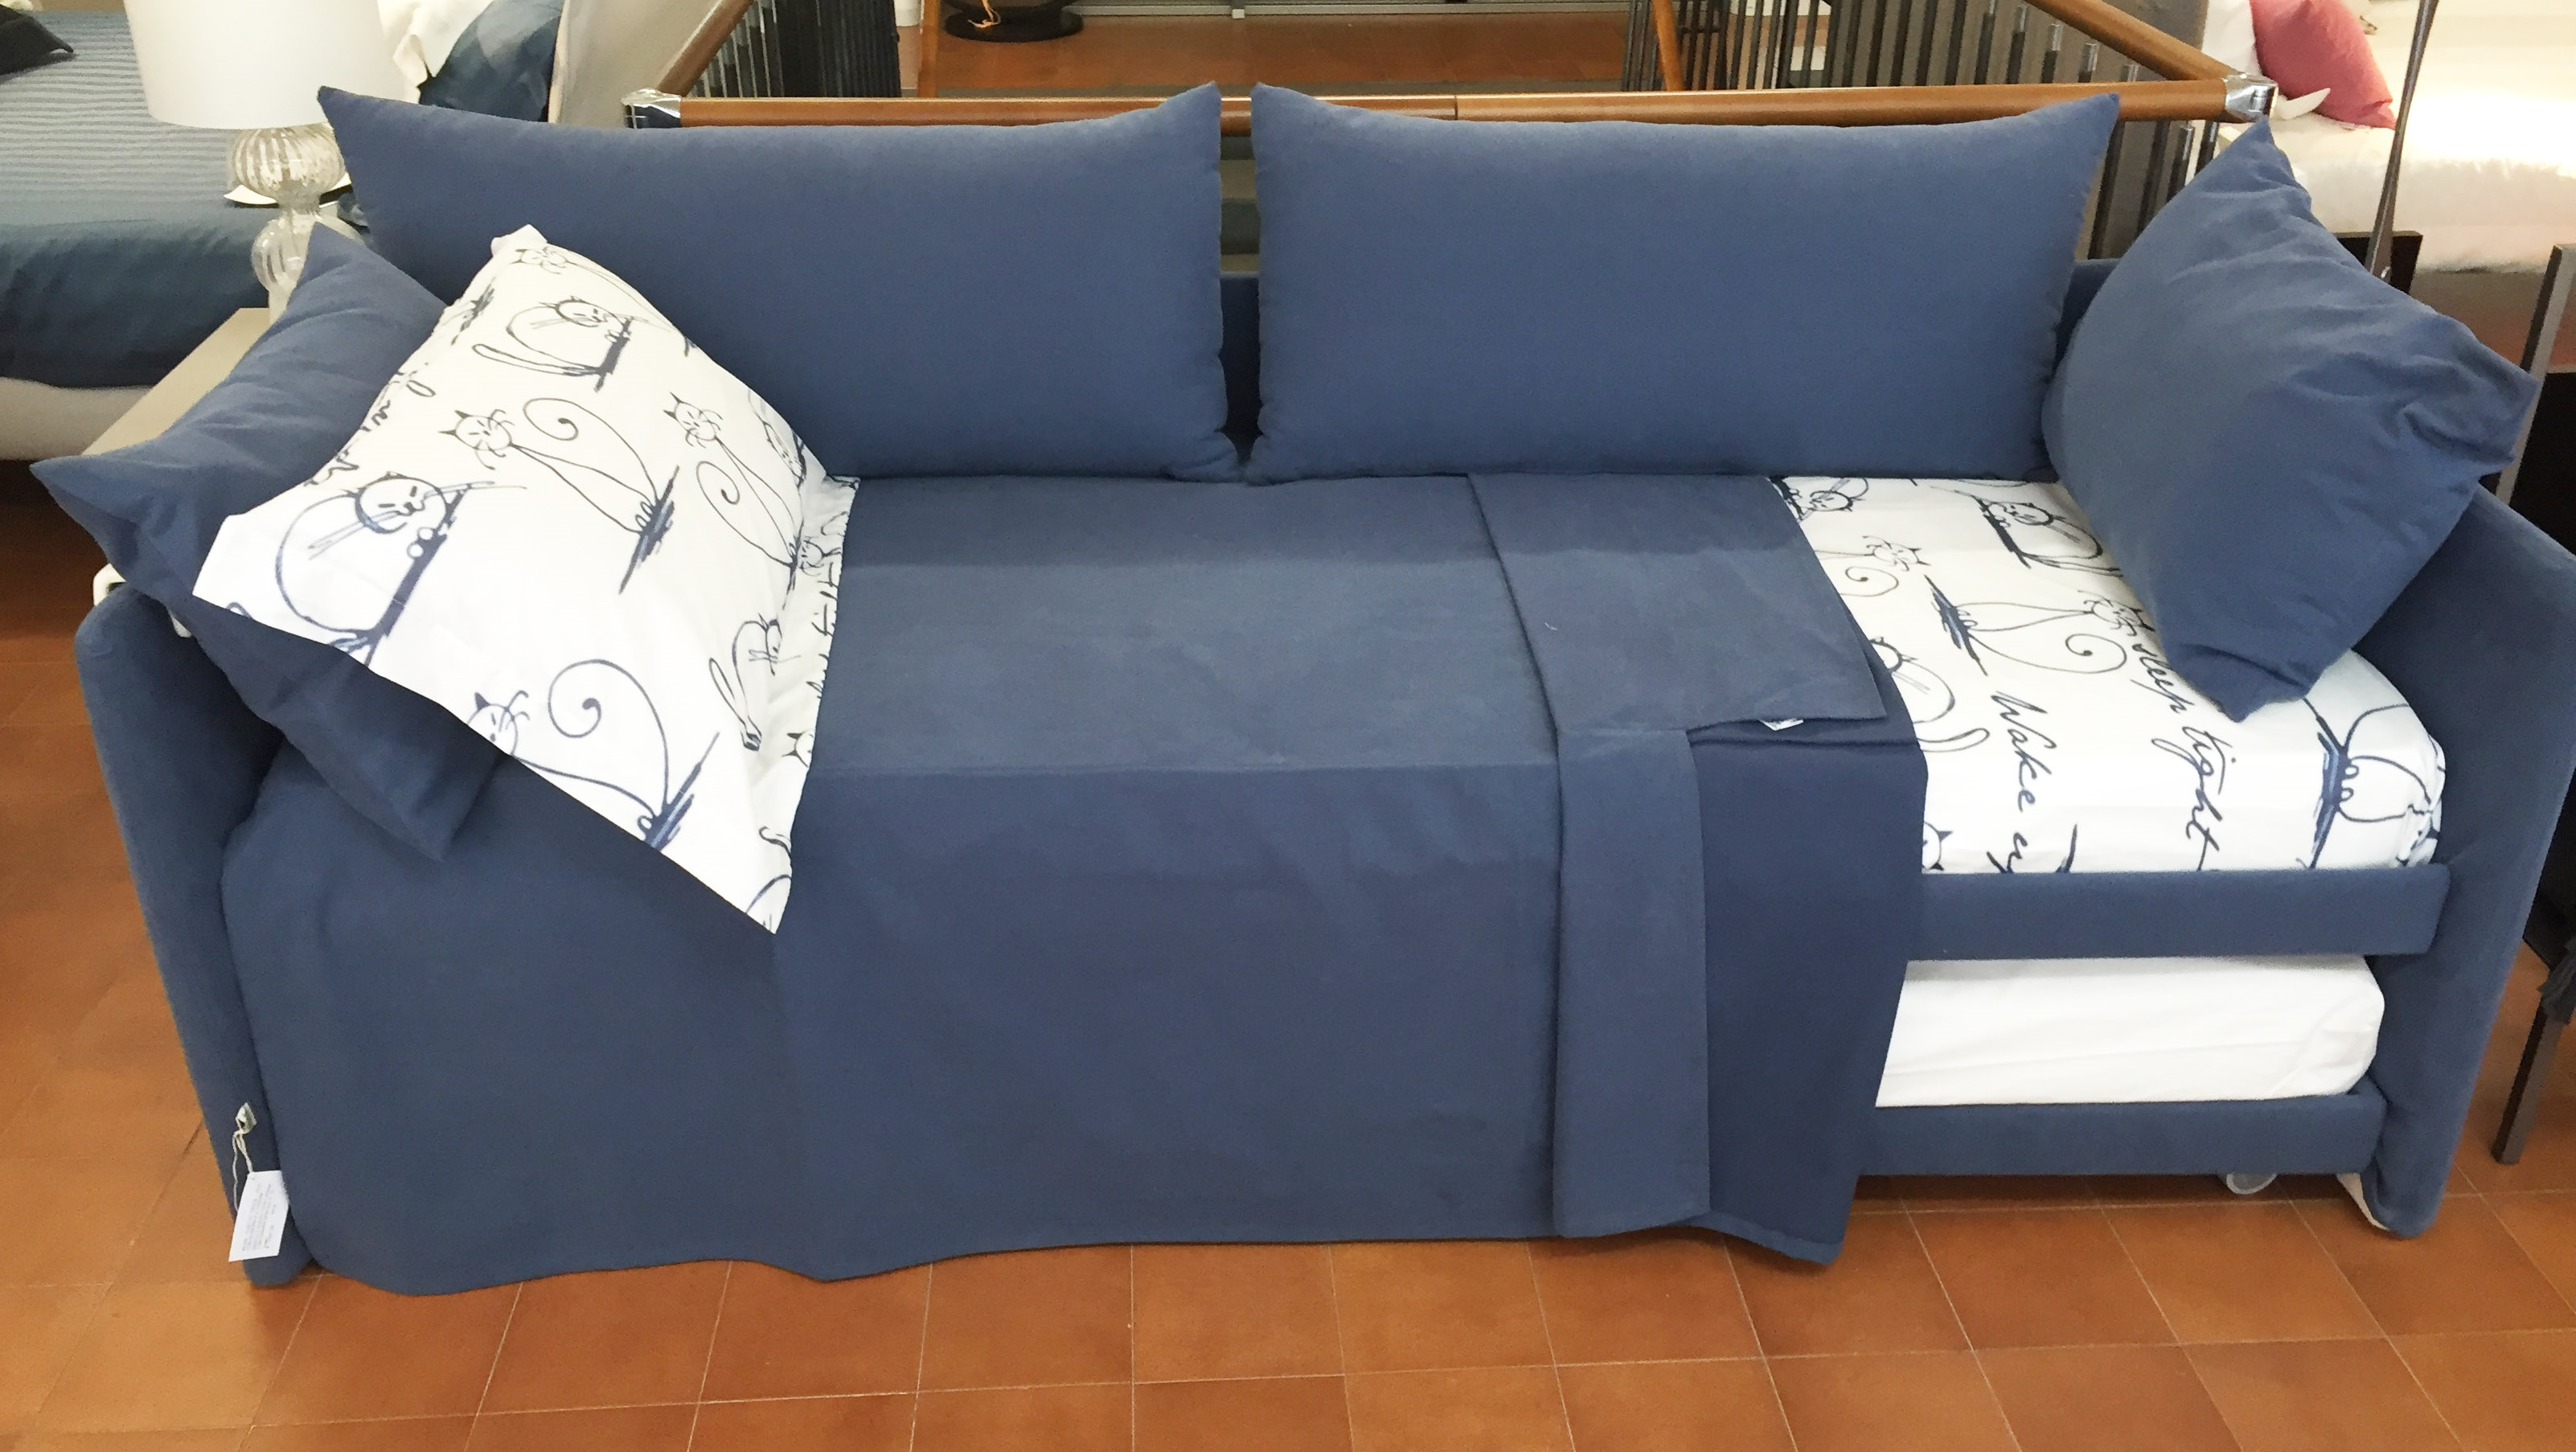 Duetto Flou Outlet. Flou Letti Outlet Mondini With Duetto Flou ...